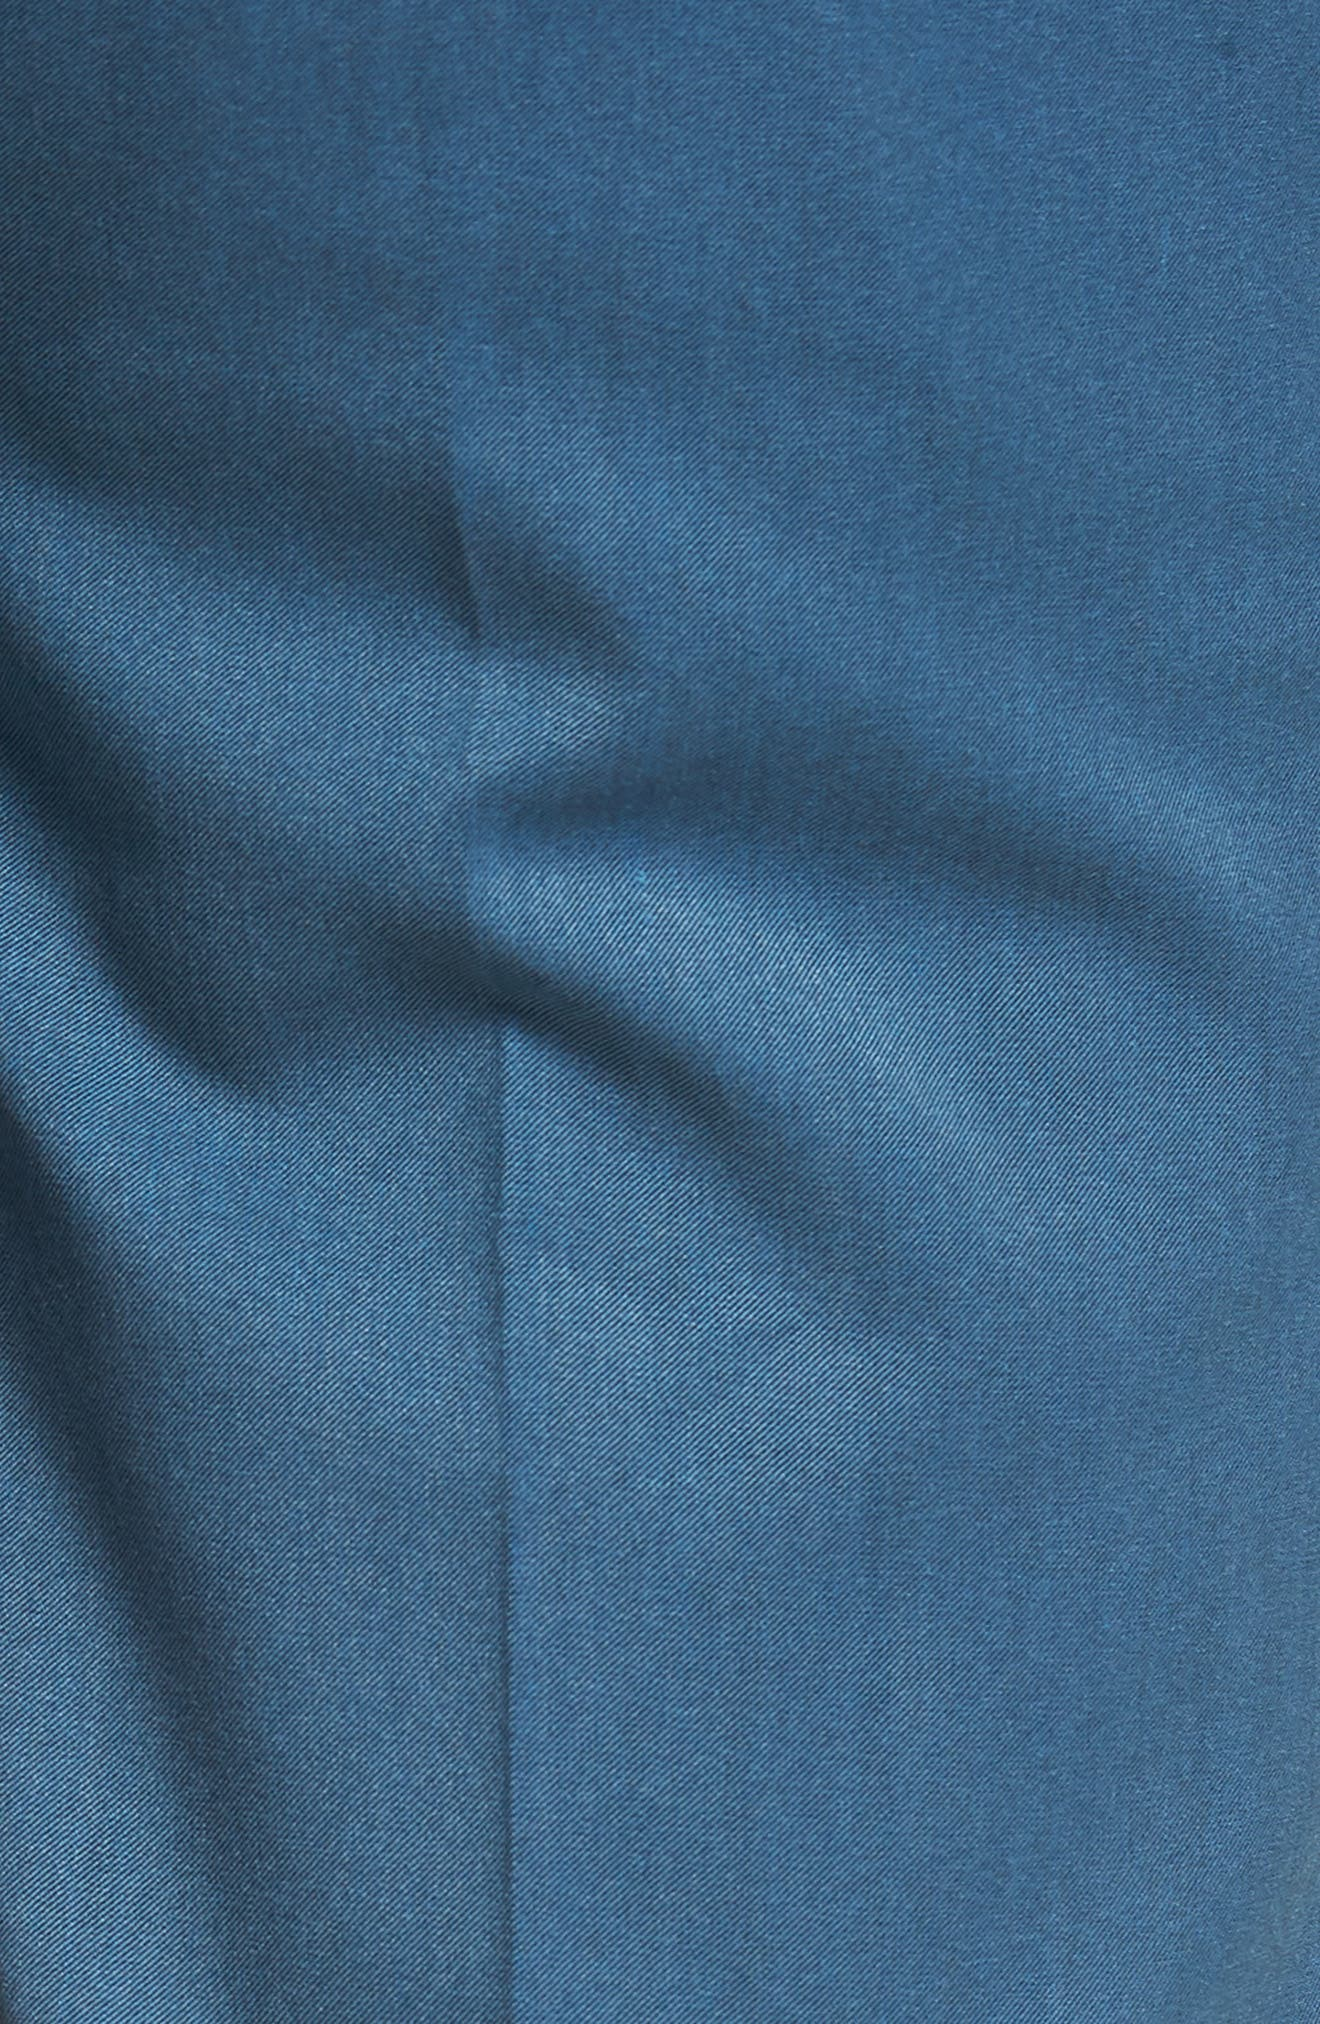 Skinny Fit Suit Trousers,                             Alternate thumbnail 5, color,                             450